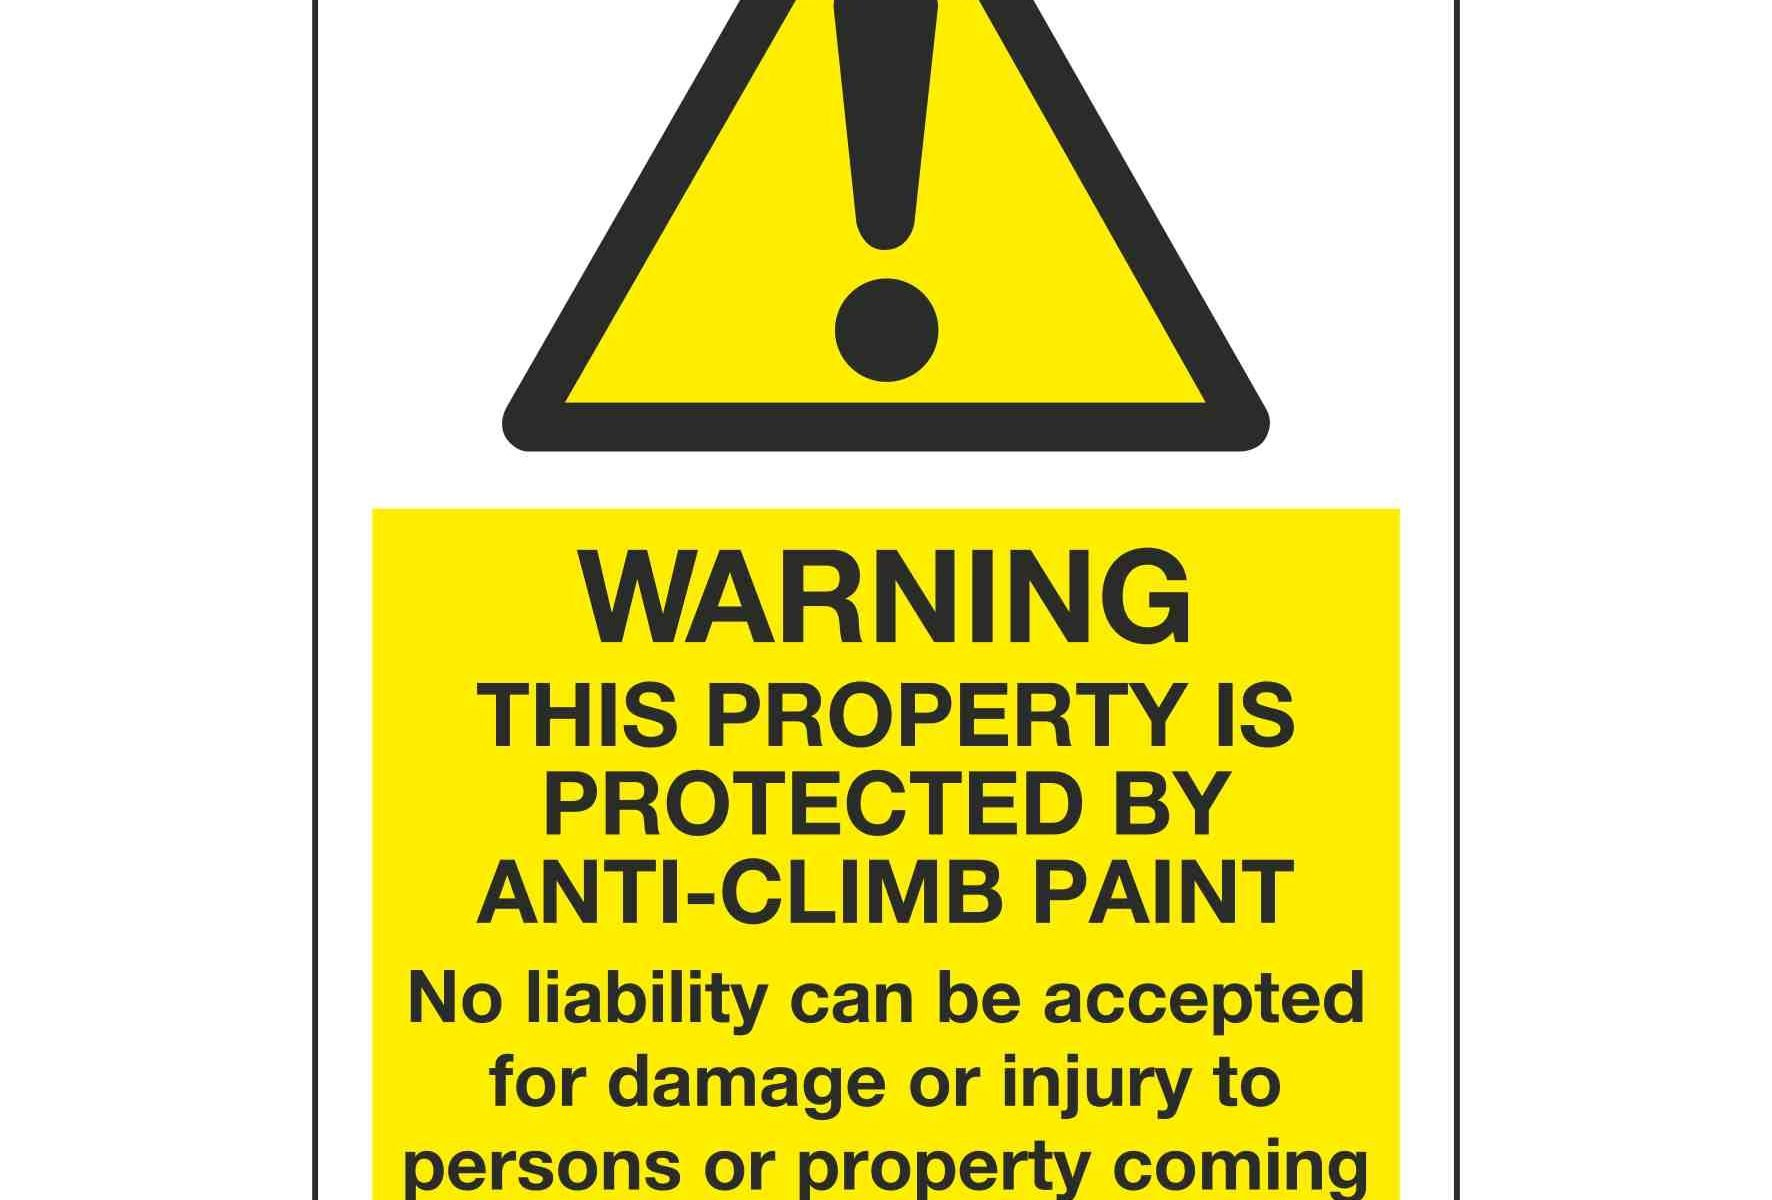 WARNING THIS PROPERTY IS PROTECTED BY ANTI-CLIMB PAINT No liability can be accepted for damage or injury to persons or property coming into contact with surfaces protected by this product